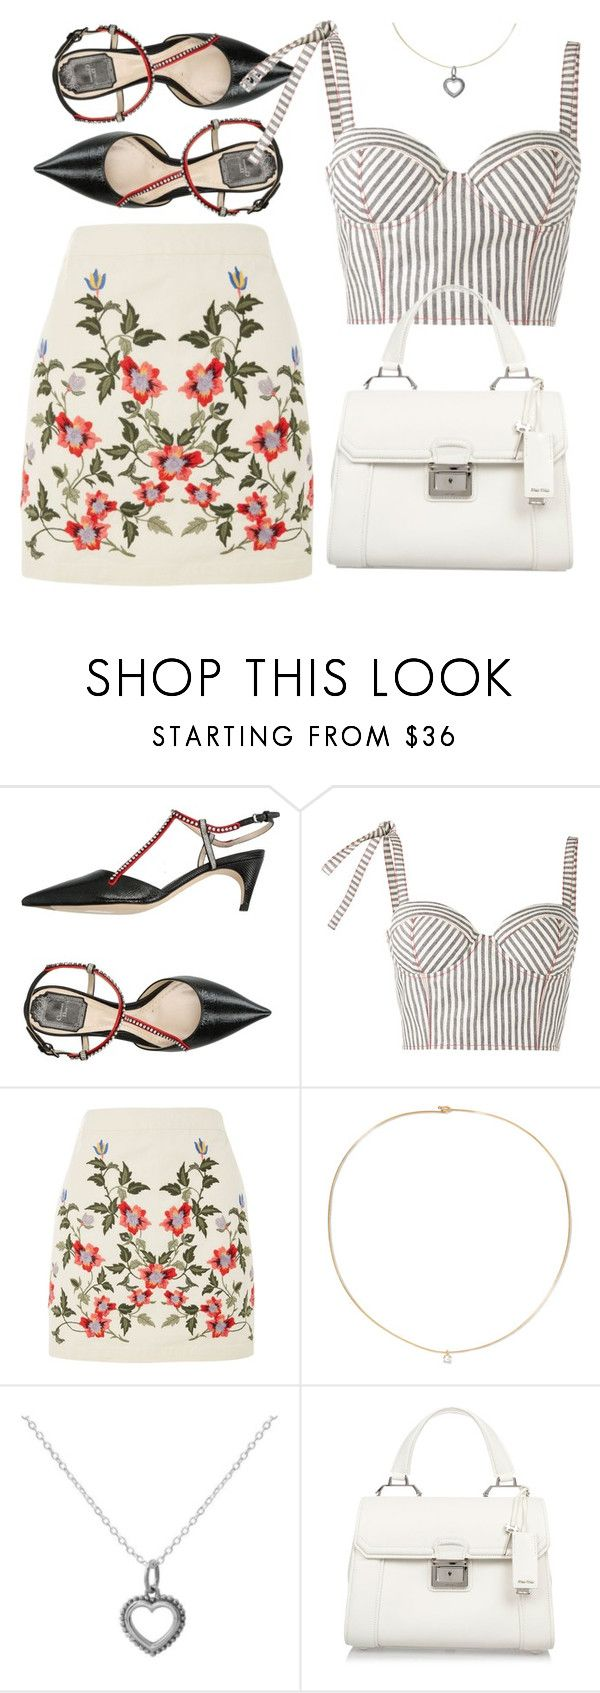 """Floral and Stripes"" by ivansyd ❤ liked on Polyvore featuring Christian Dior, Rosie Assoulin, Topshop, Loren Stewart, Midsummer Star, Miu Miu and Floralskirts"